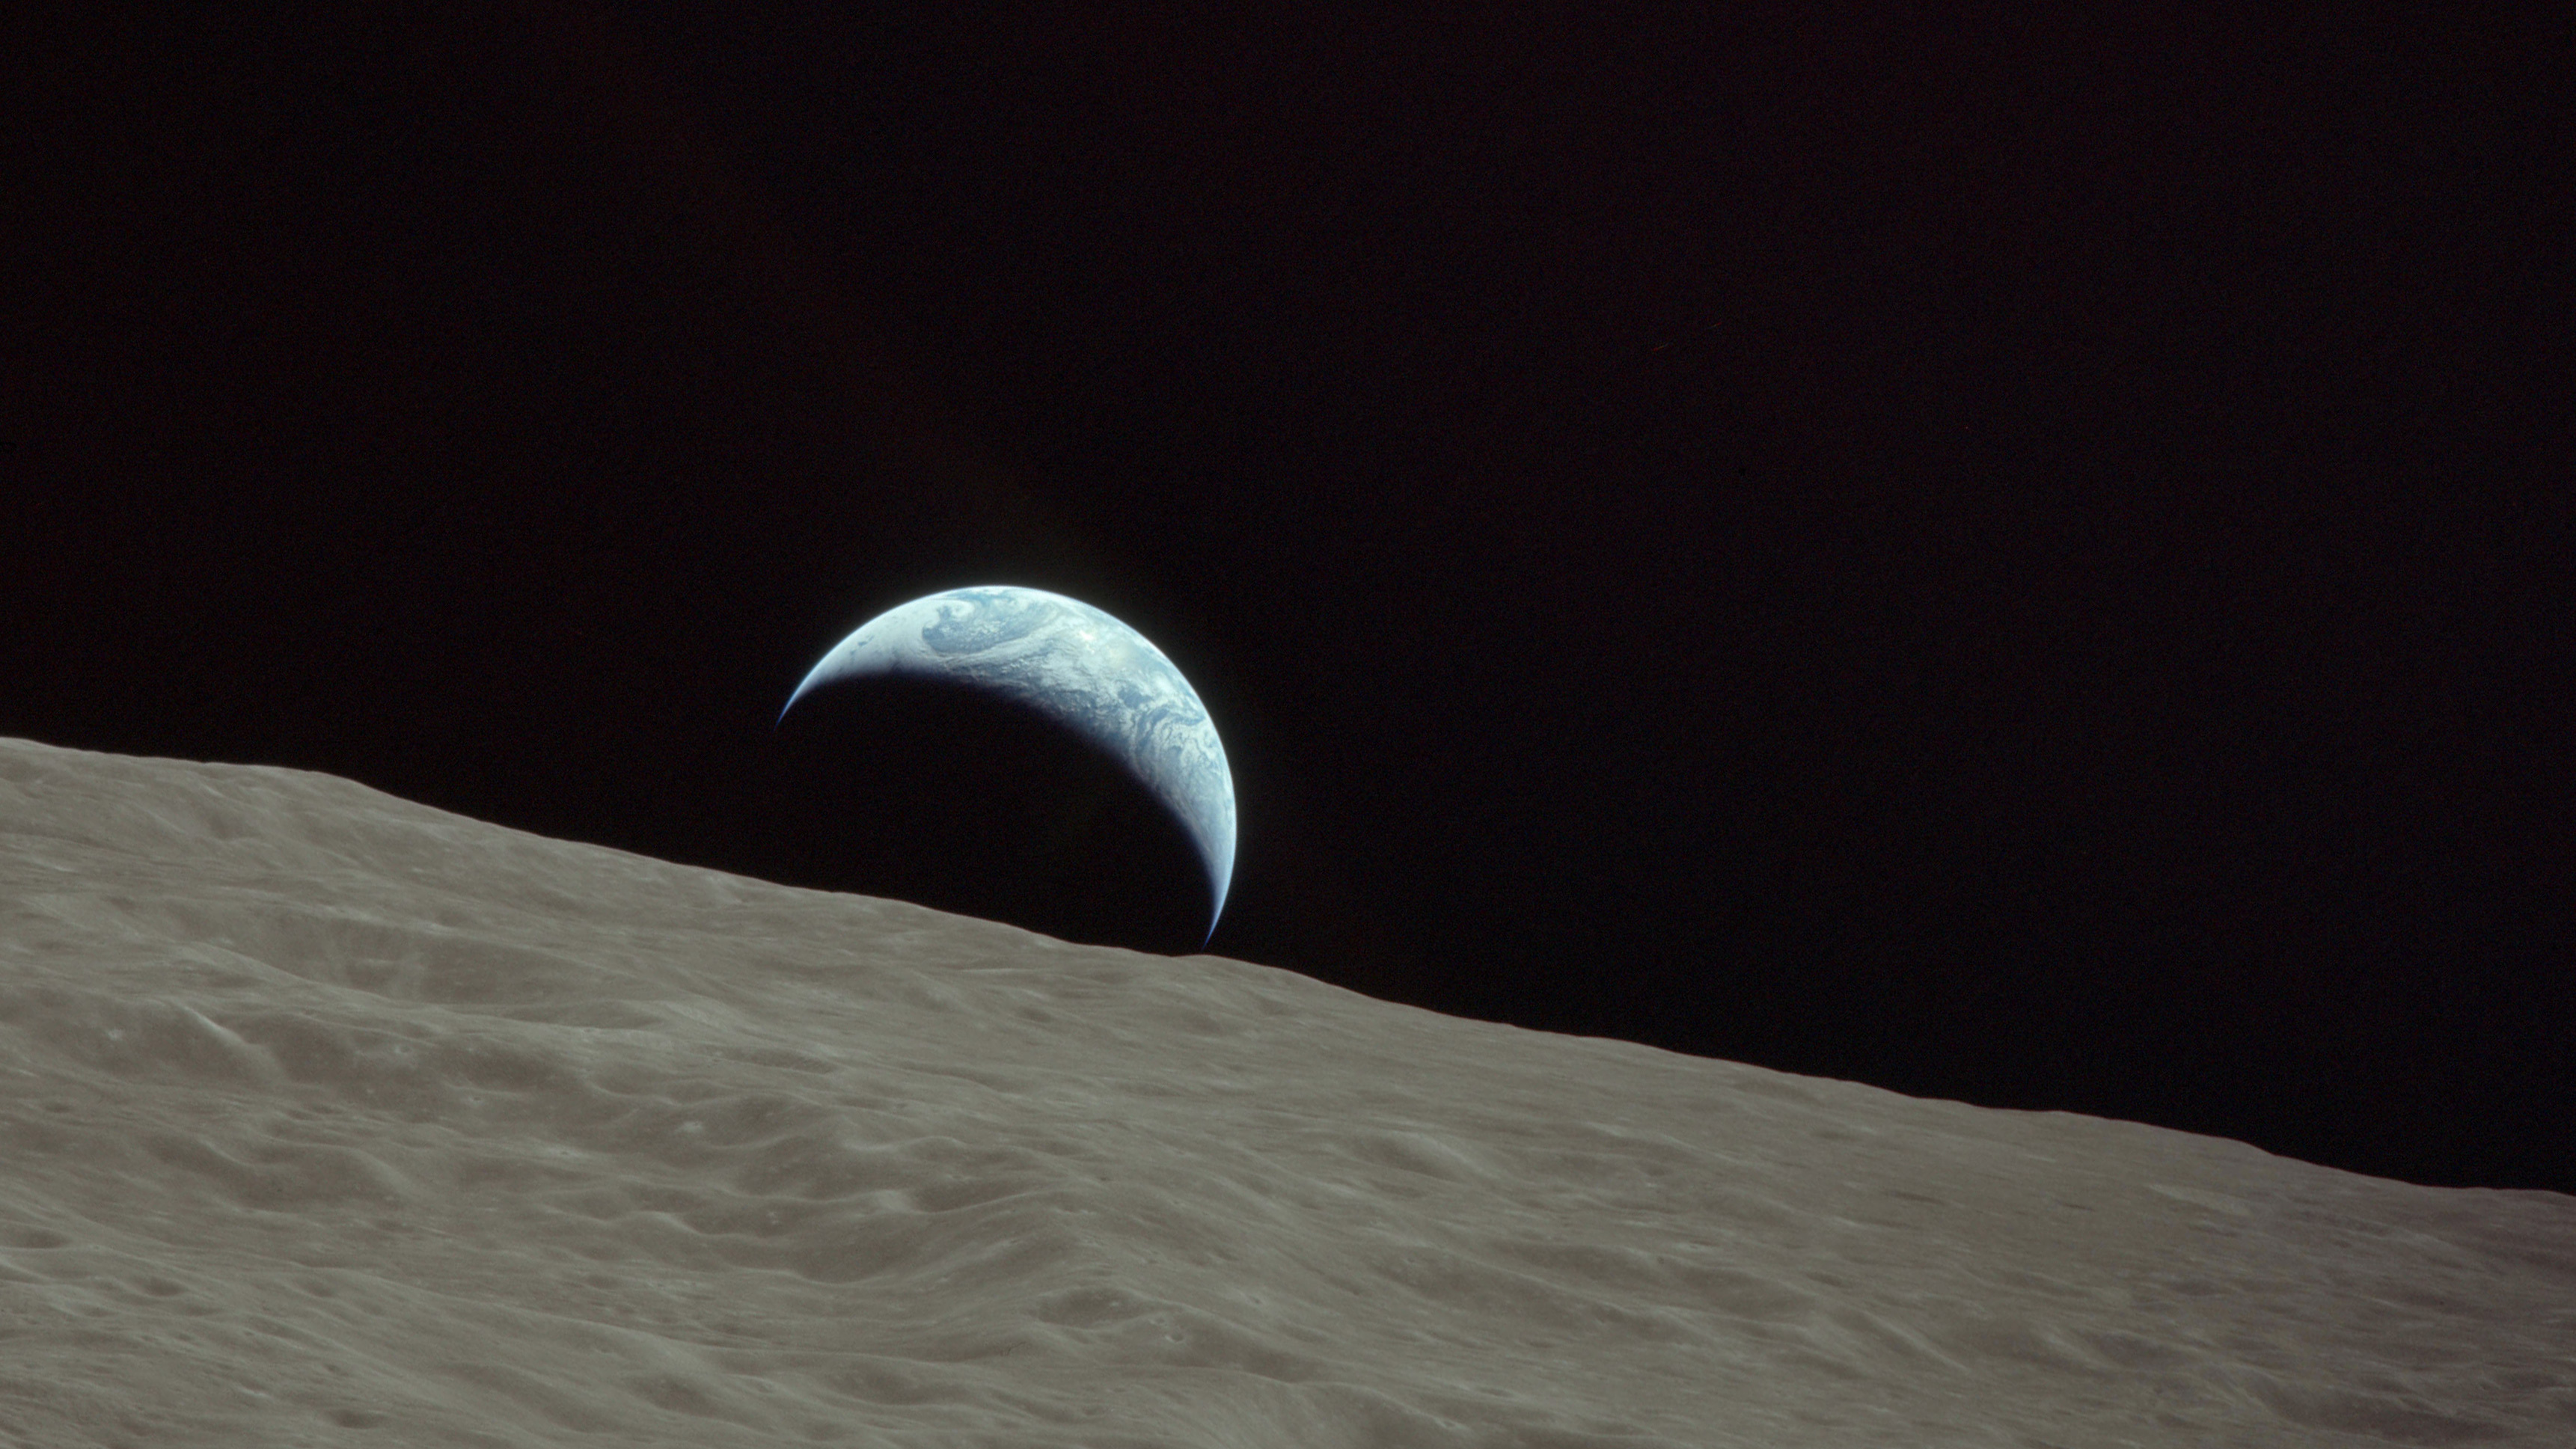 nasa apollo earth images - photo #29